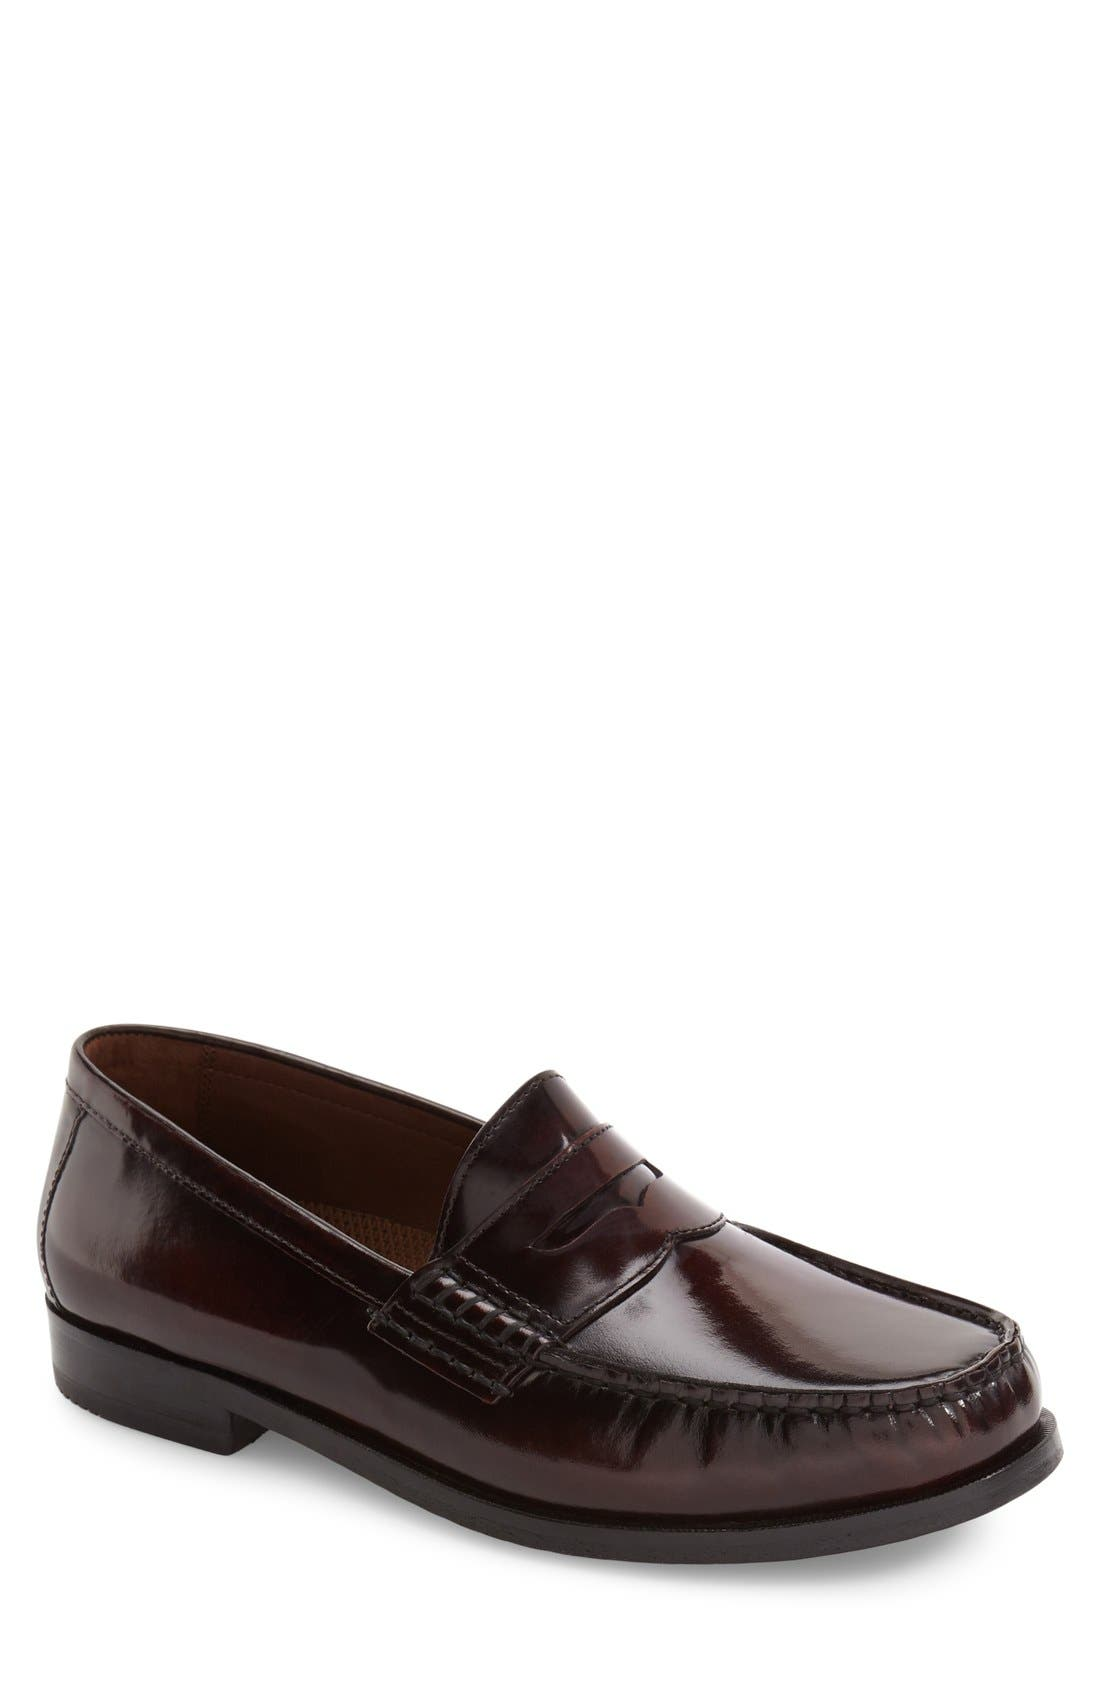 Pannell Penny Loafer,                             Main thumbnail 1, color,                             933